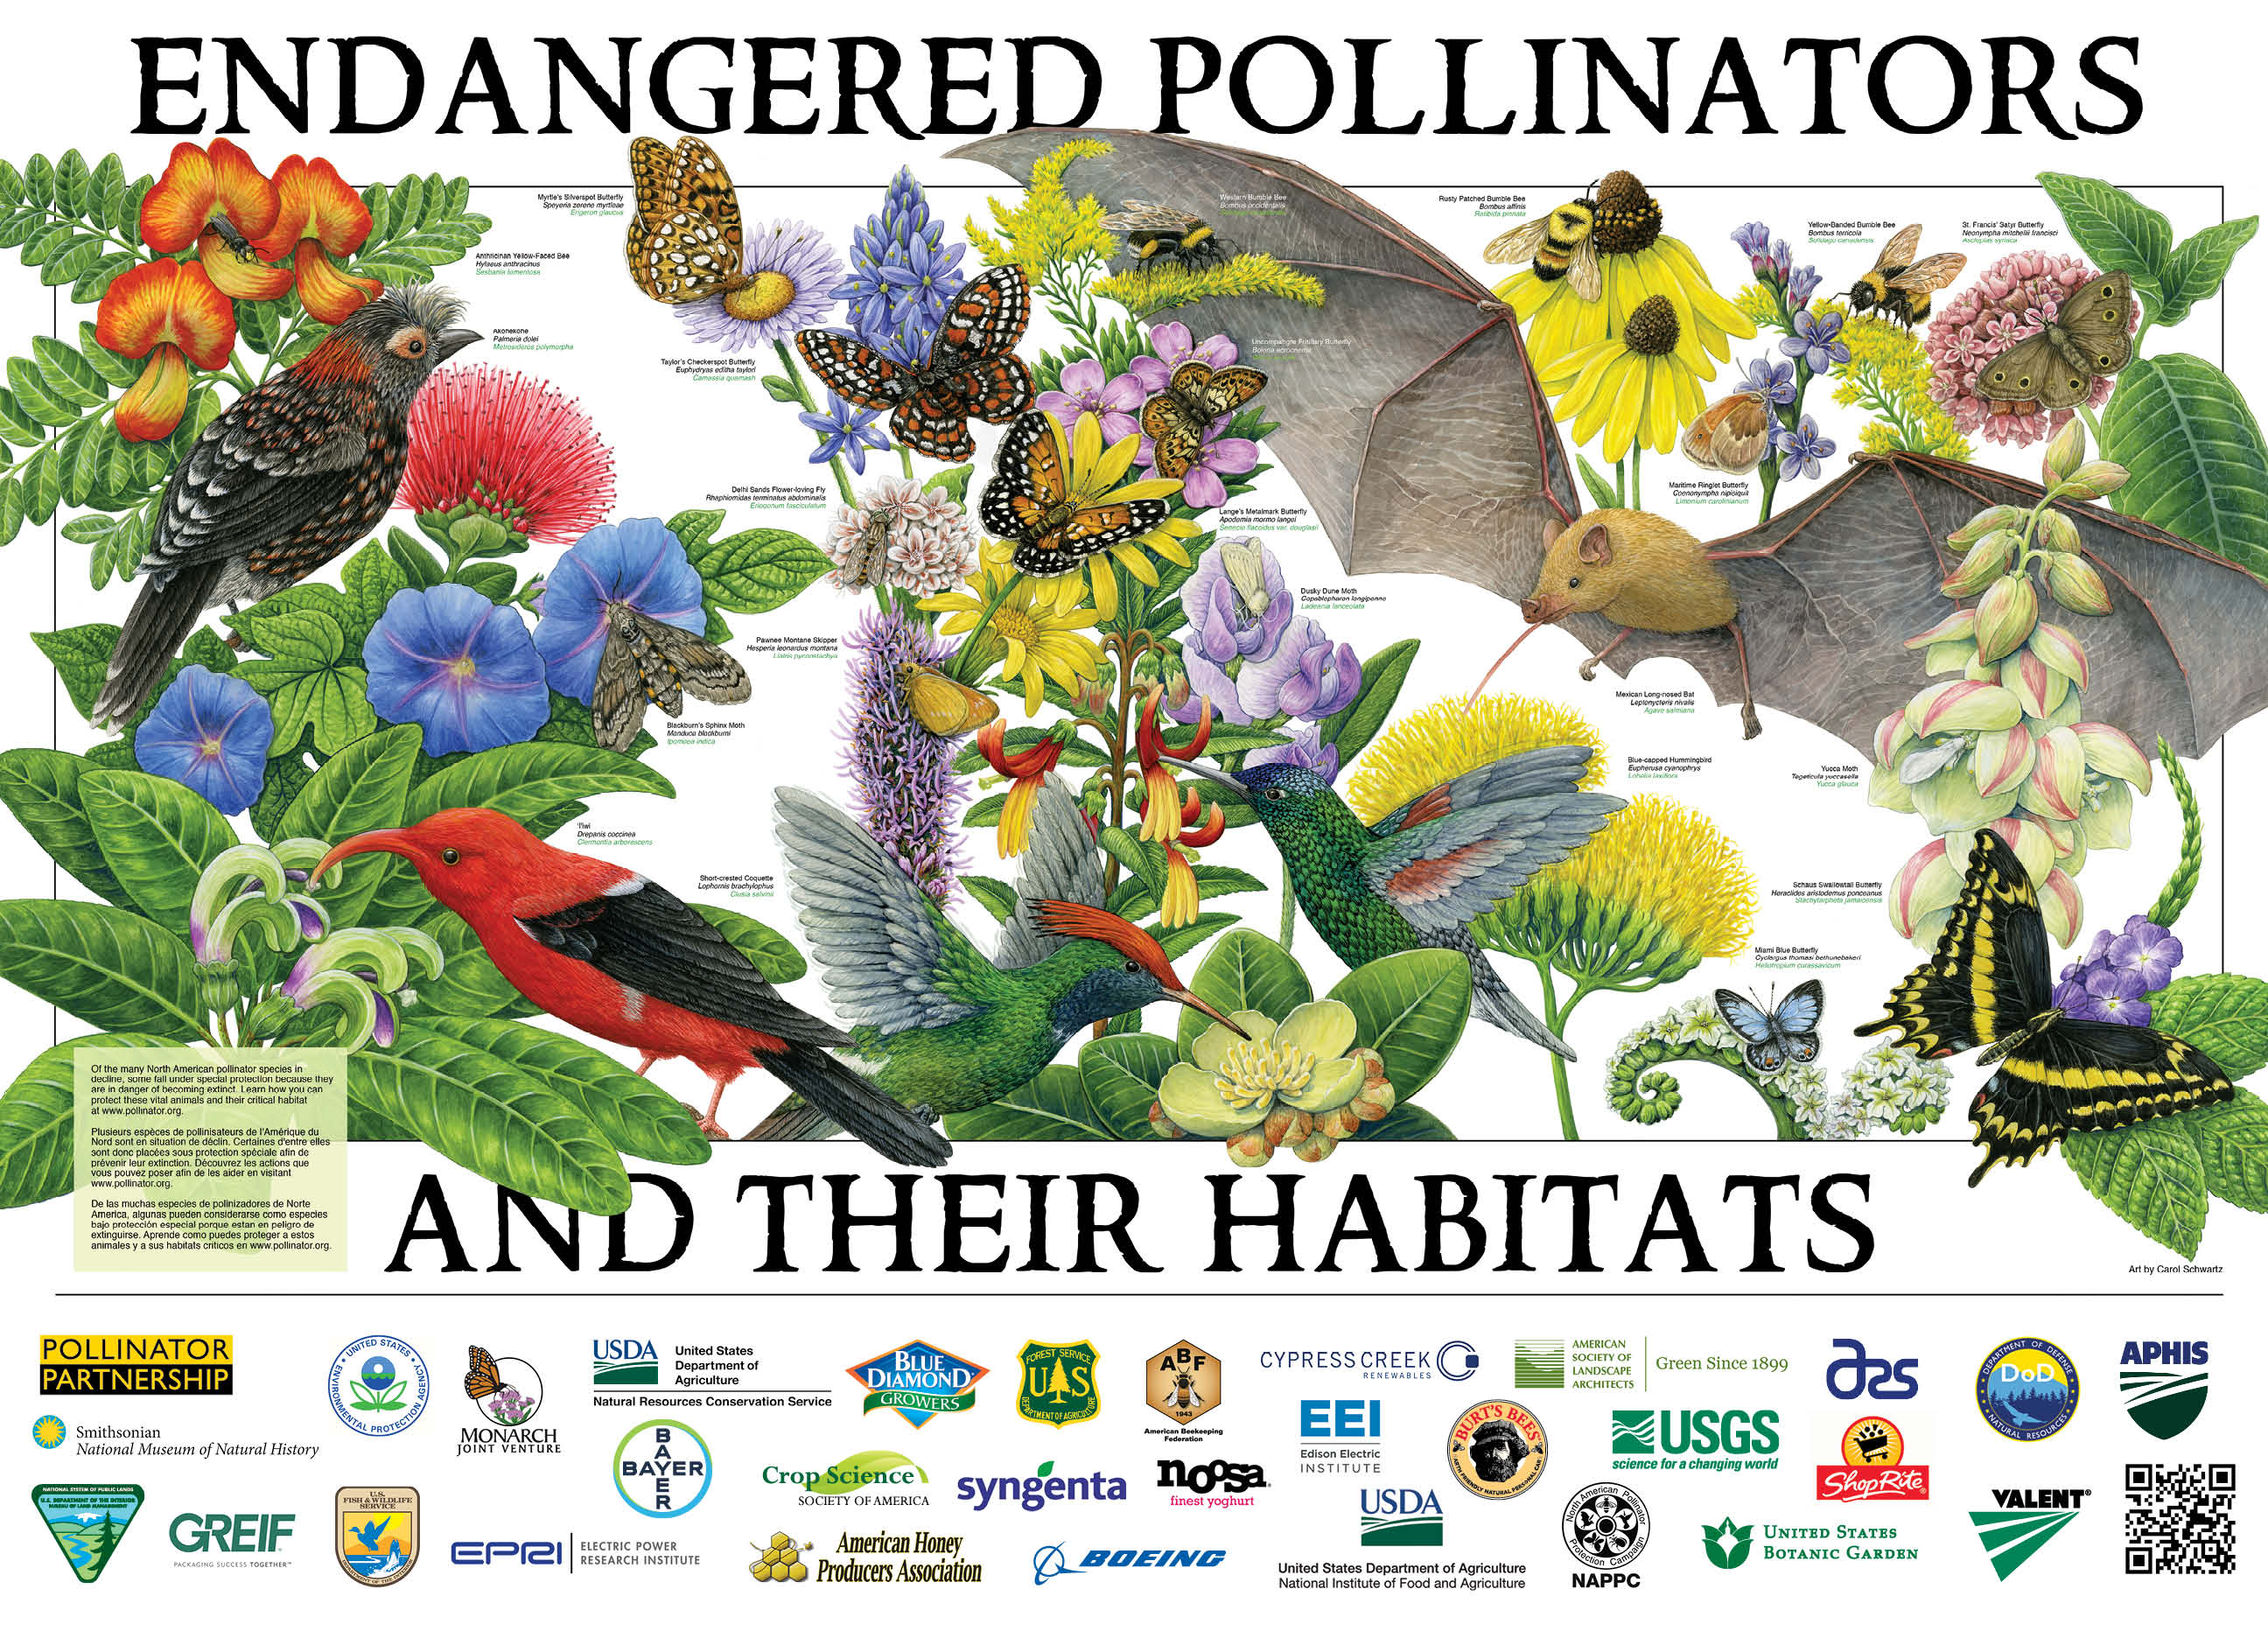 The 2019 pollinator poster features pollinator species that are at risk and listed as federally endangered or threatened.